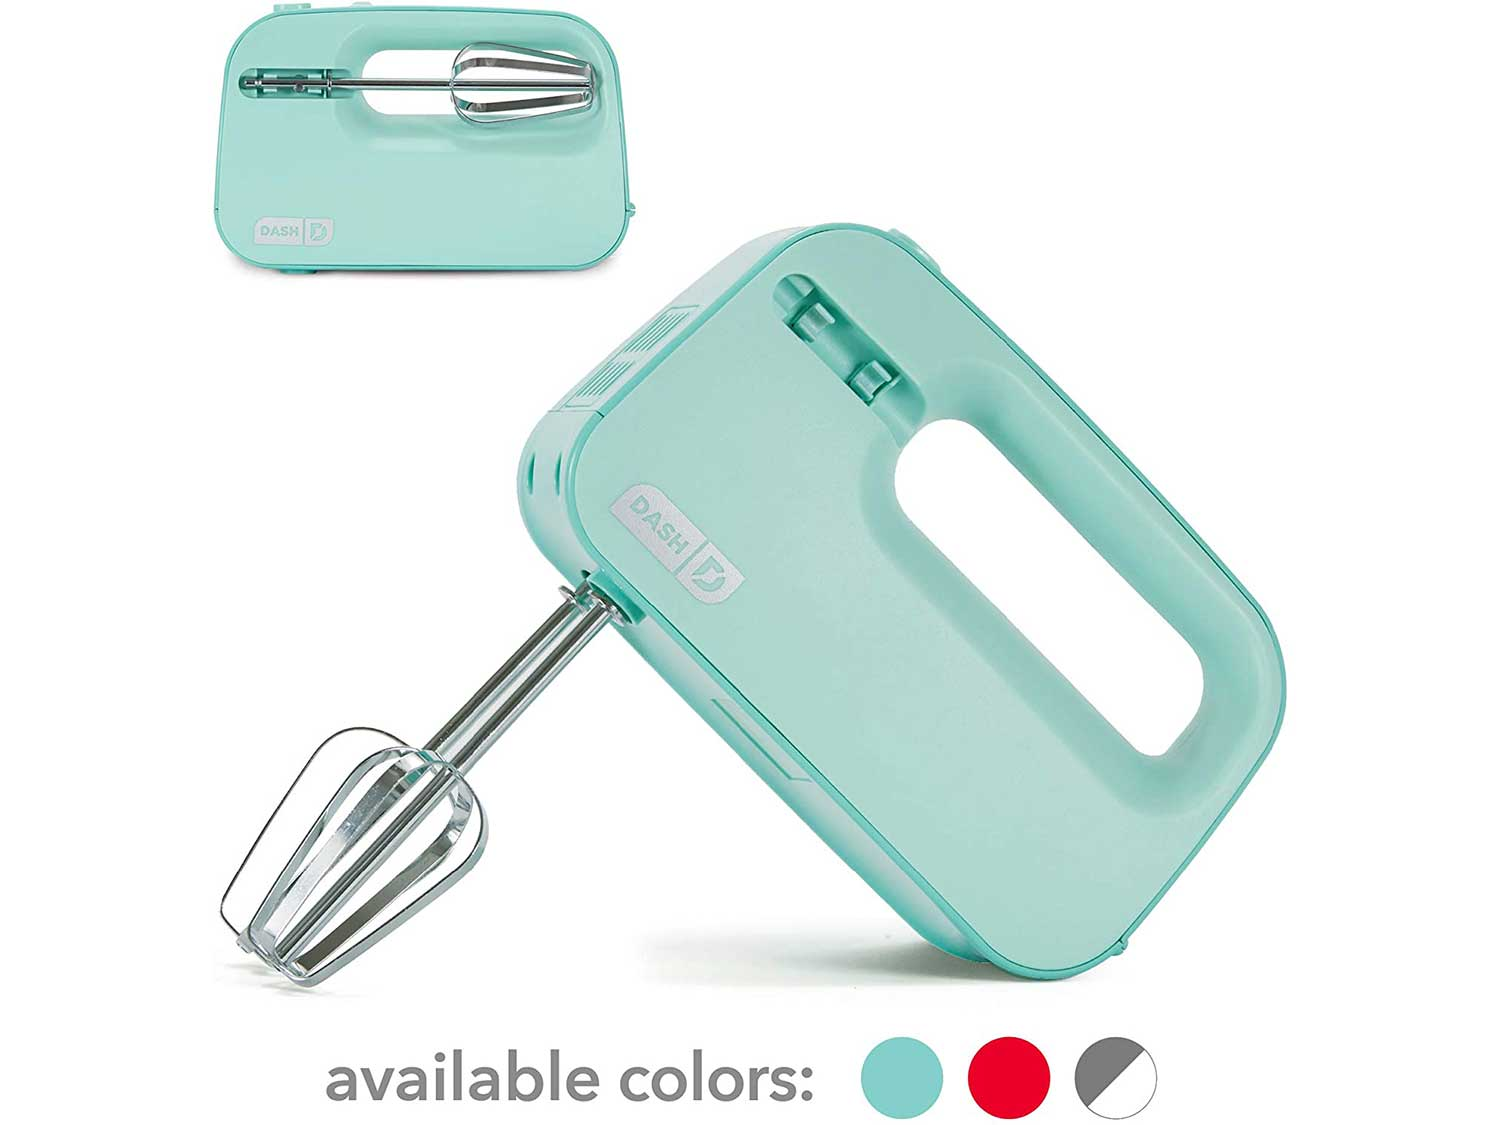 Dash Smart Store Compact Hand Mixer Electric for Whipping + Mixing Cookies, Brownies, Cakes, Dough, Batters, Meringues & More, 3 speed, Aqua